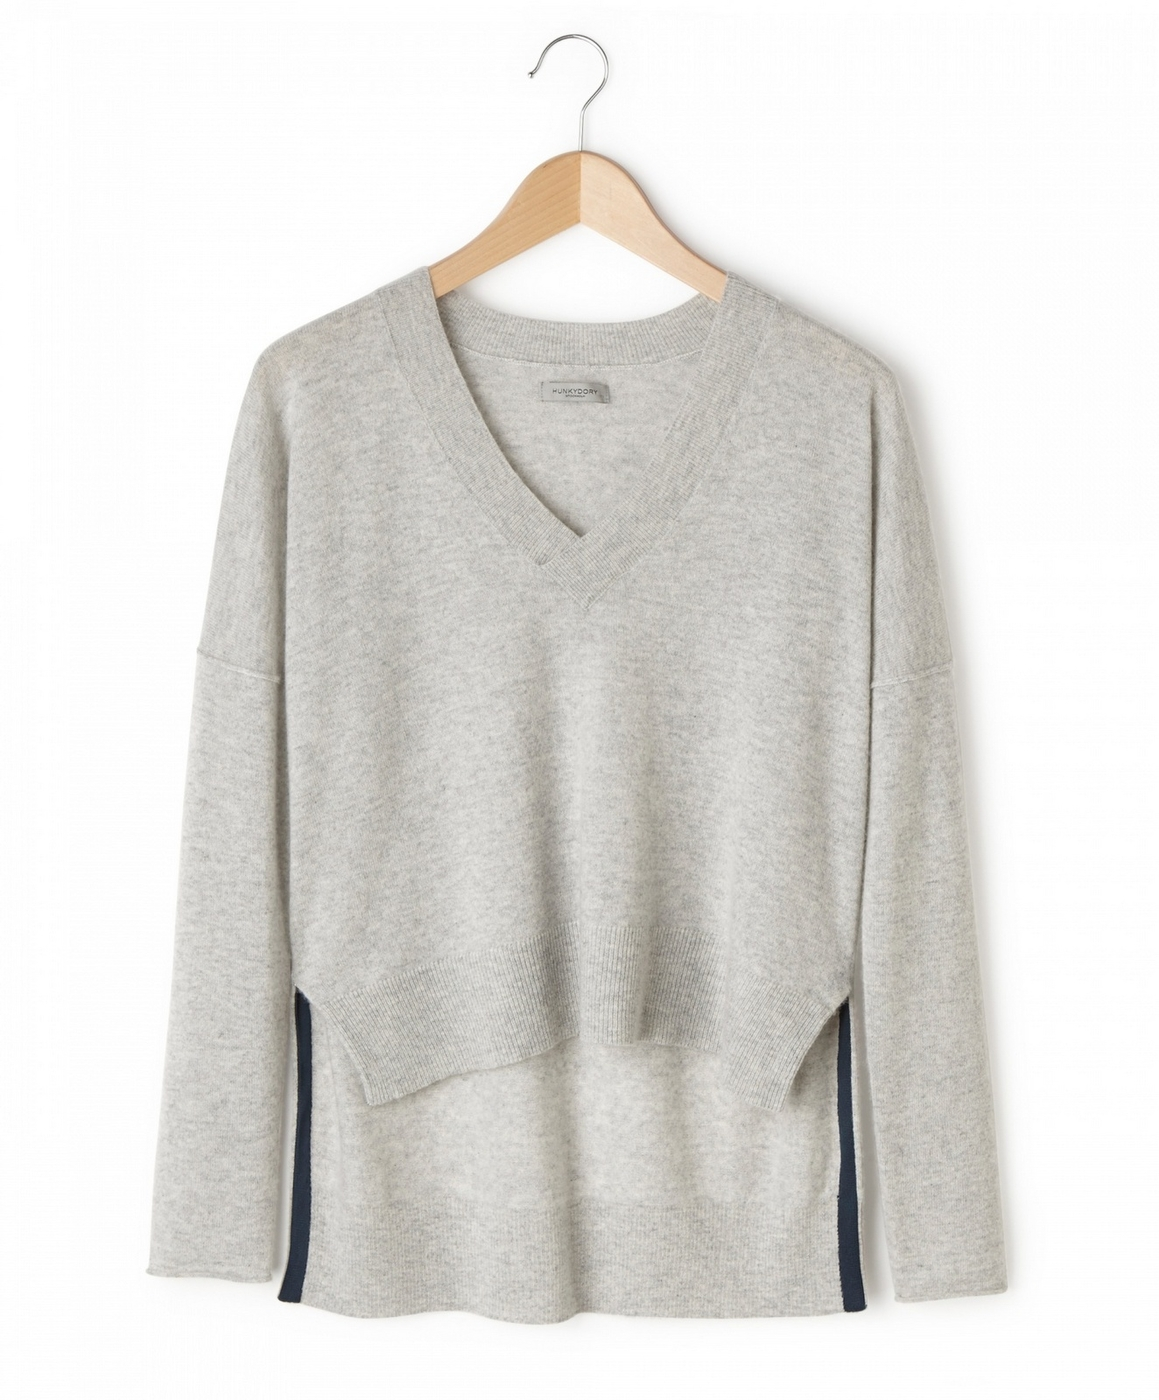 753_44ac465556-15237710086-4-hunkydory-erie-cashmere-knit-zoom-001.jpg